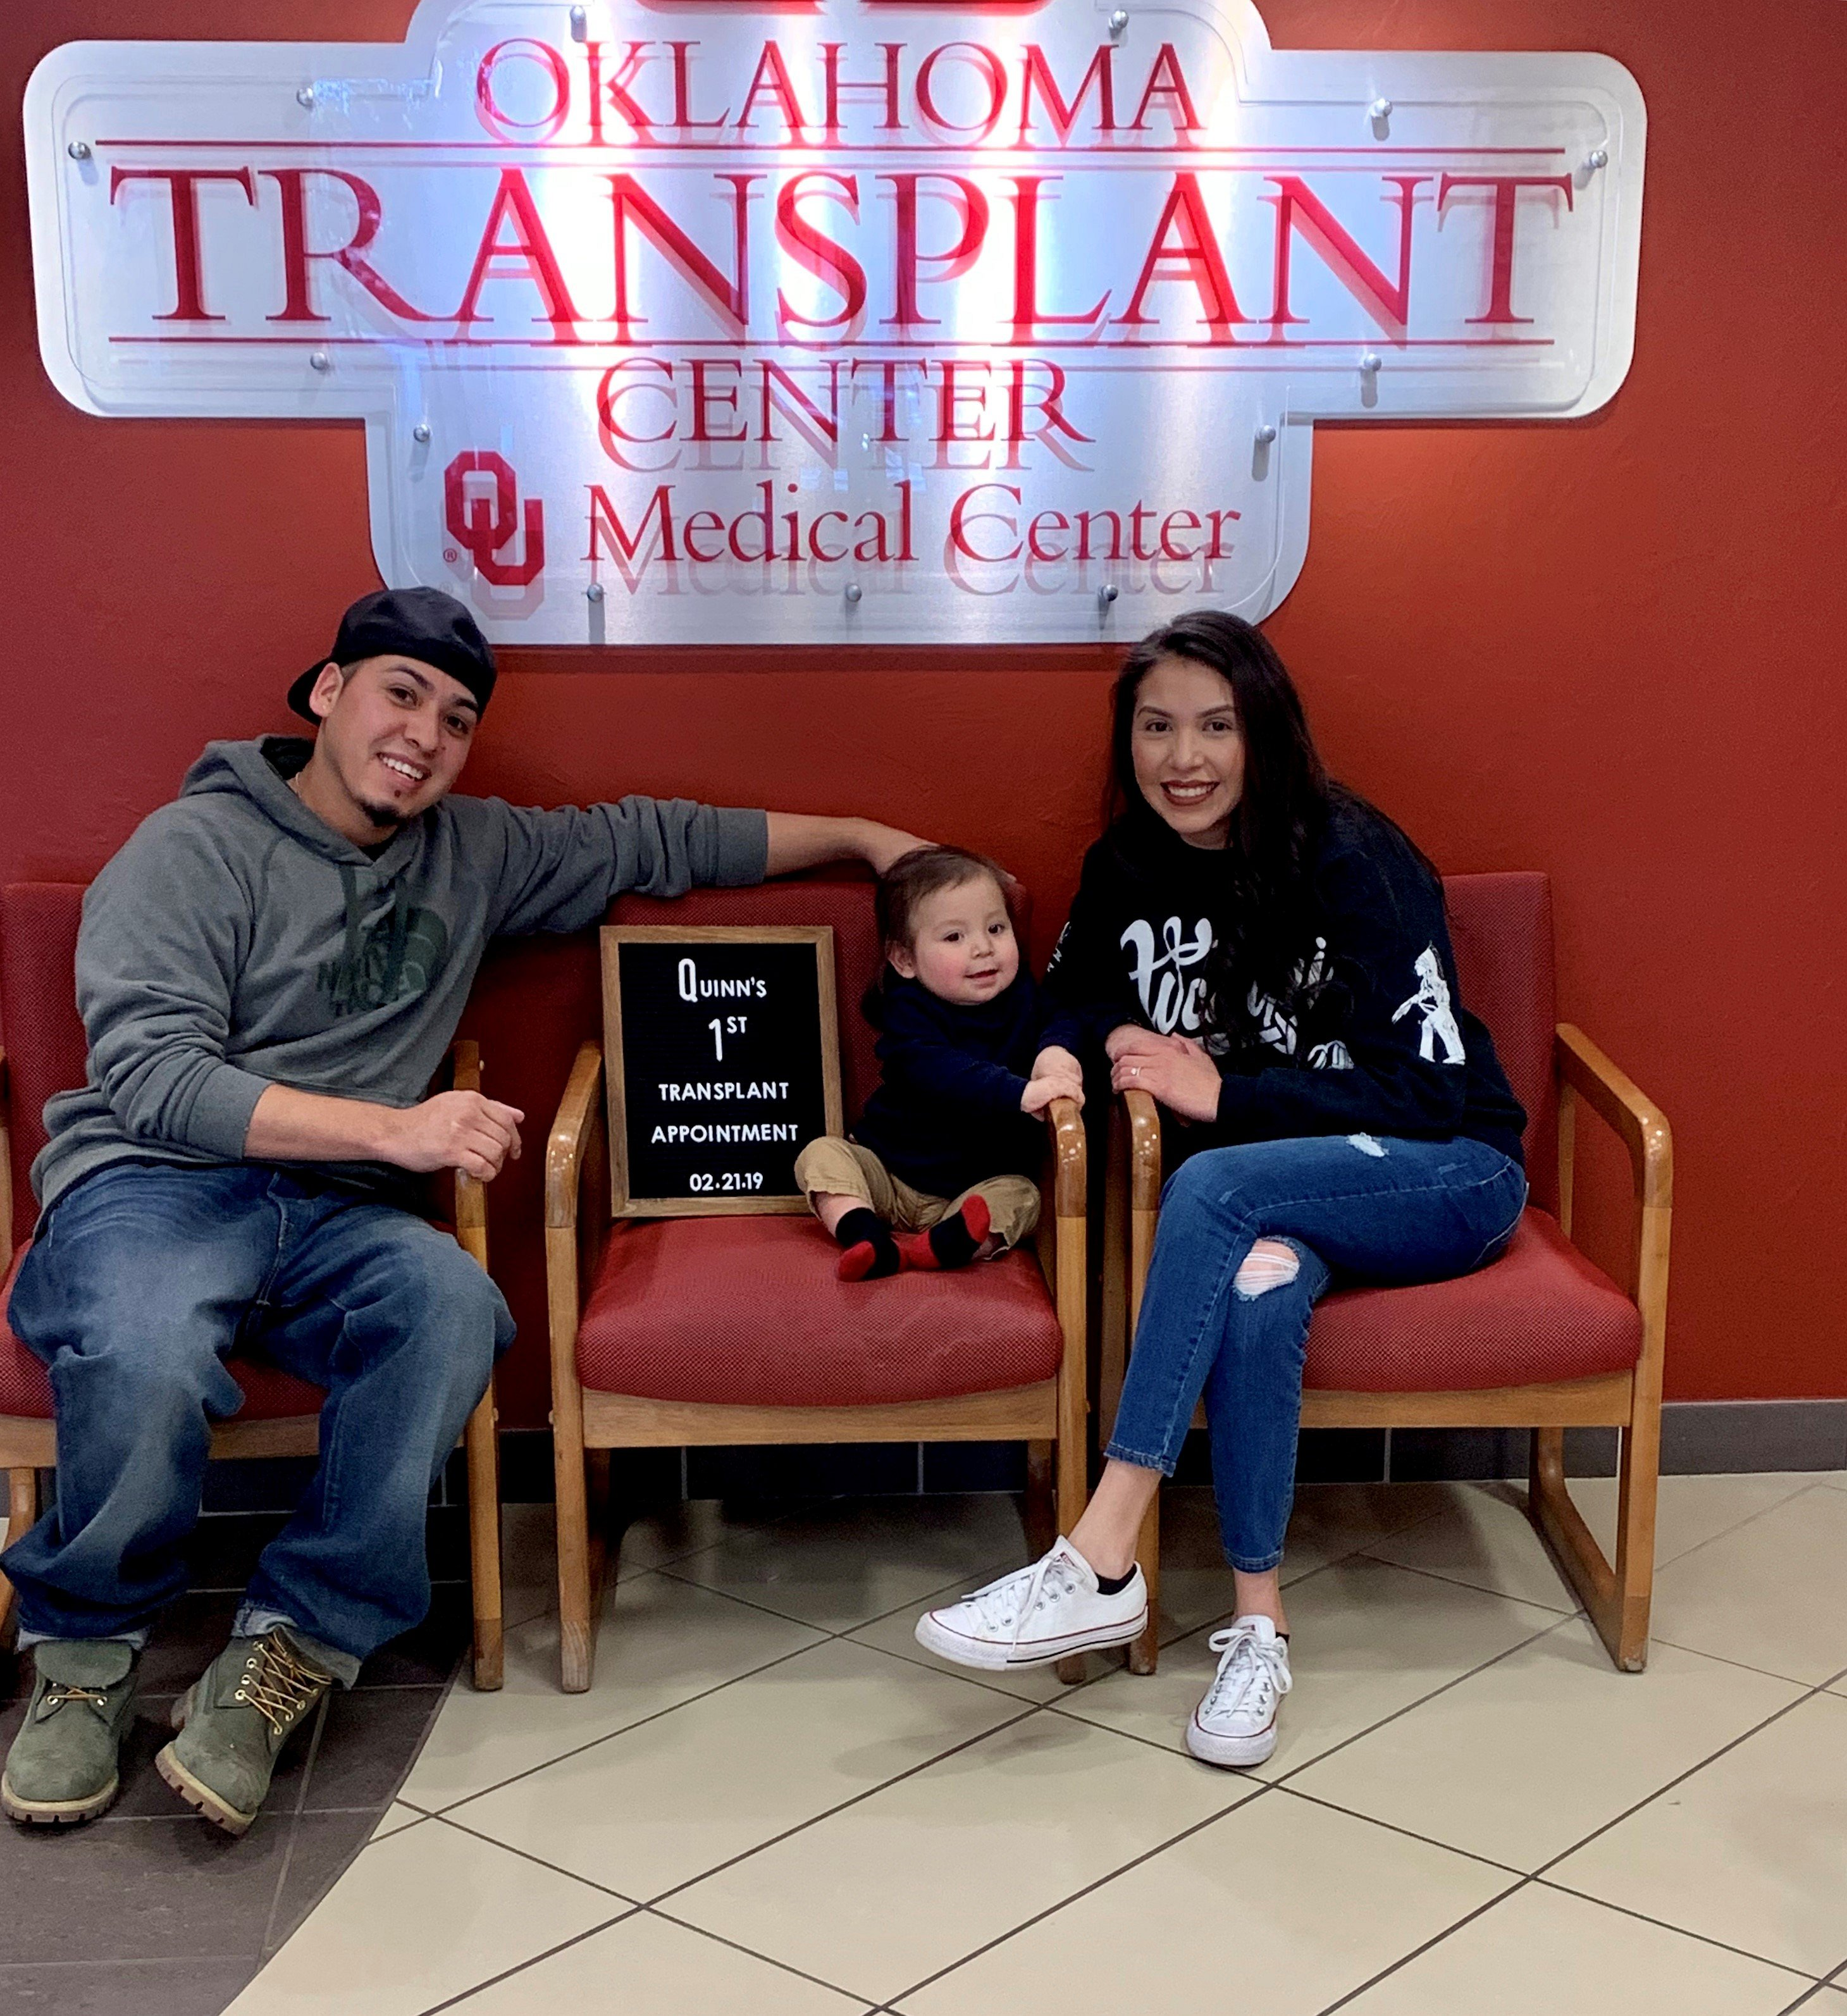 1st transplant appointment